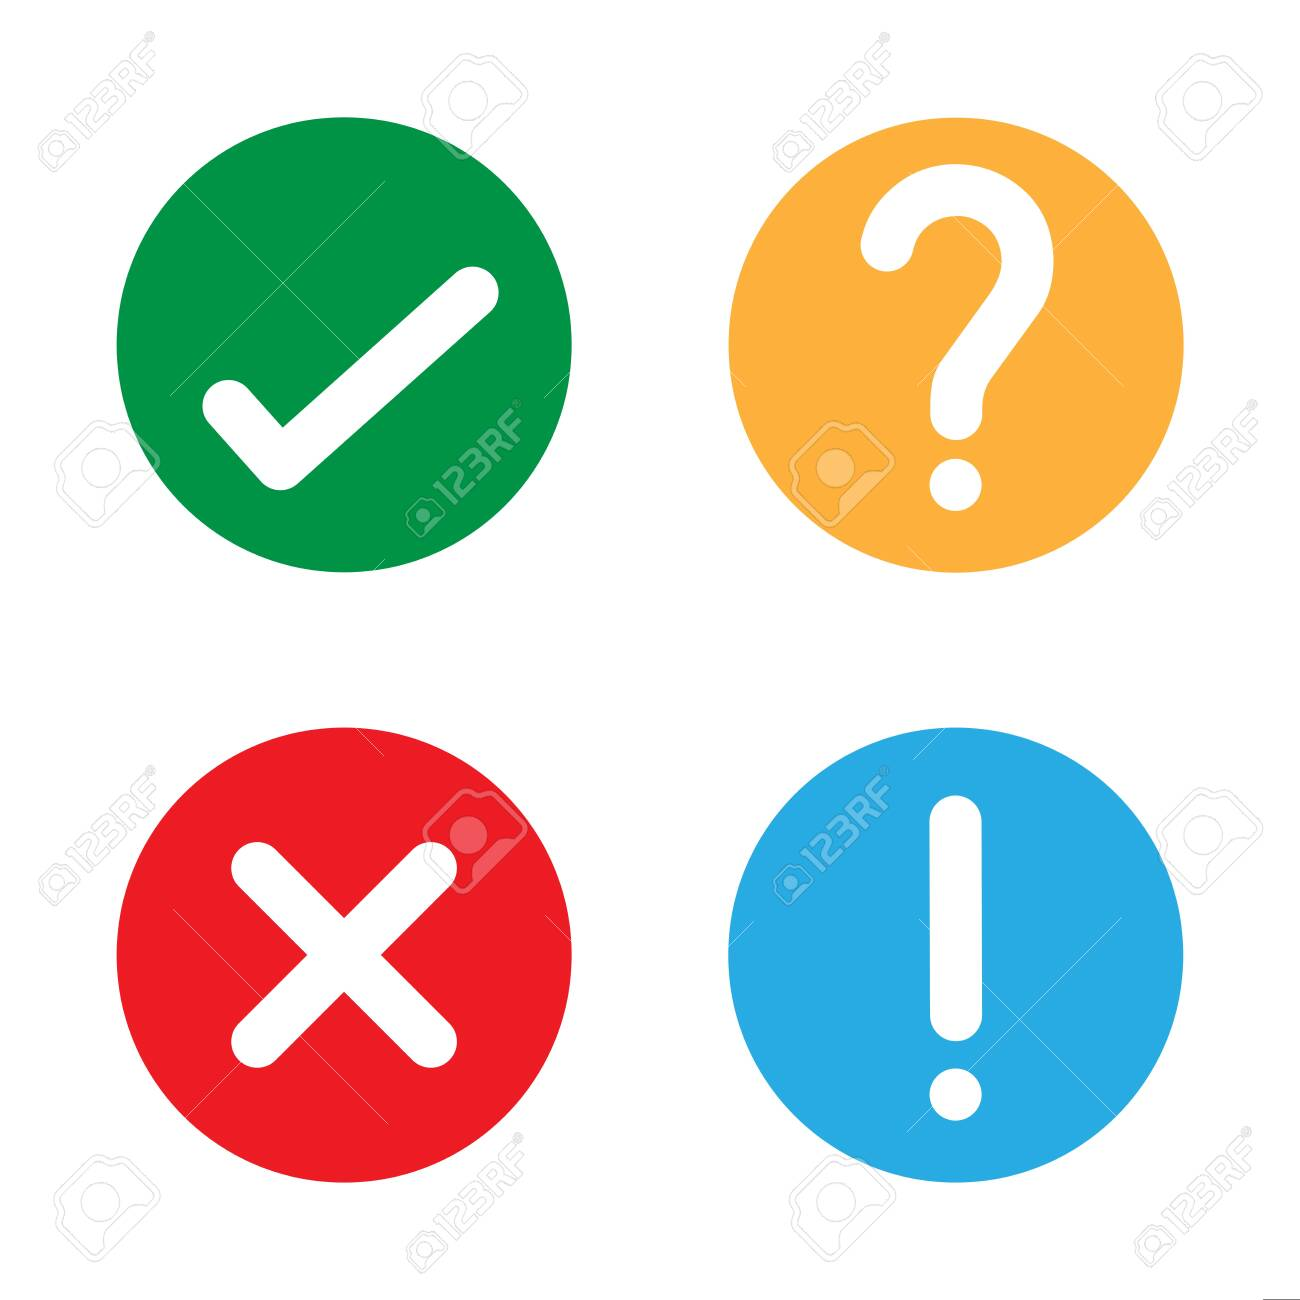 Yes check no question mark vector illustration icon - 133975192